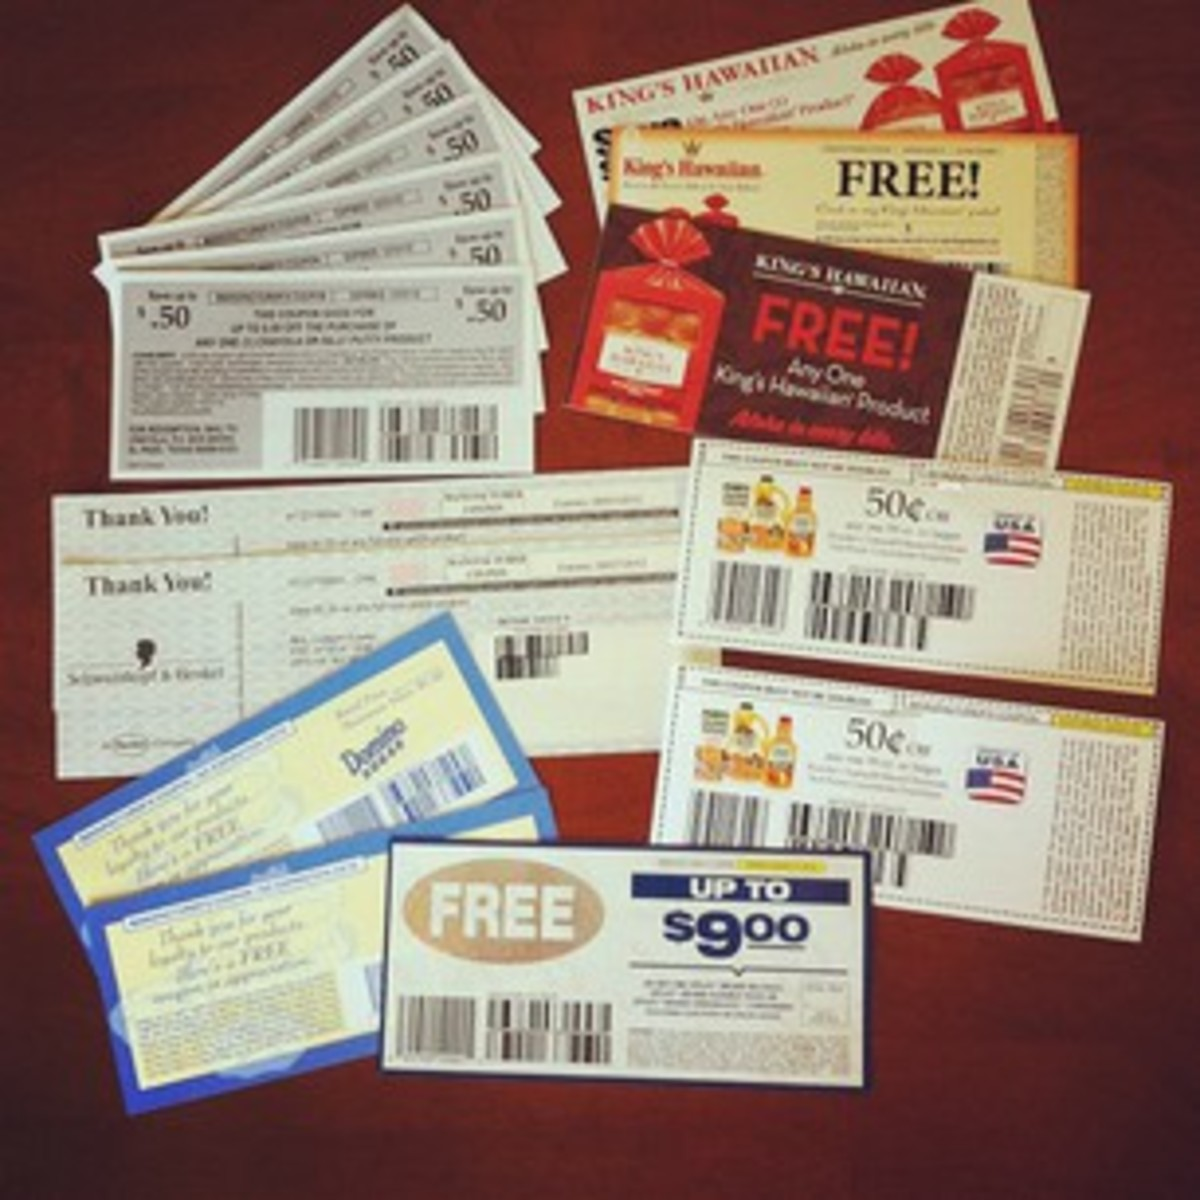 Free Coupons by Mail How to Get Coupons in the Mail + Companies | Manufacturers - Page 1 of 4 -. You can get Free Coupons by Mail no surveys and/or Printable Manufacturer Coupons direct from Food/Grocery and other Manufacturers.